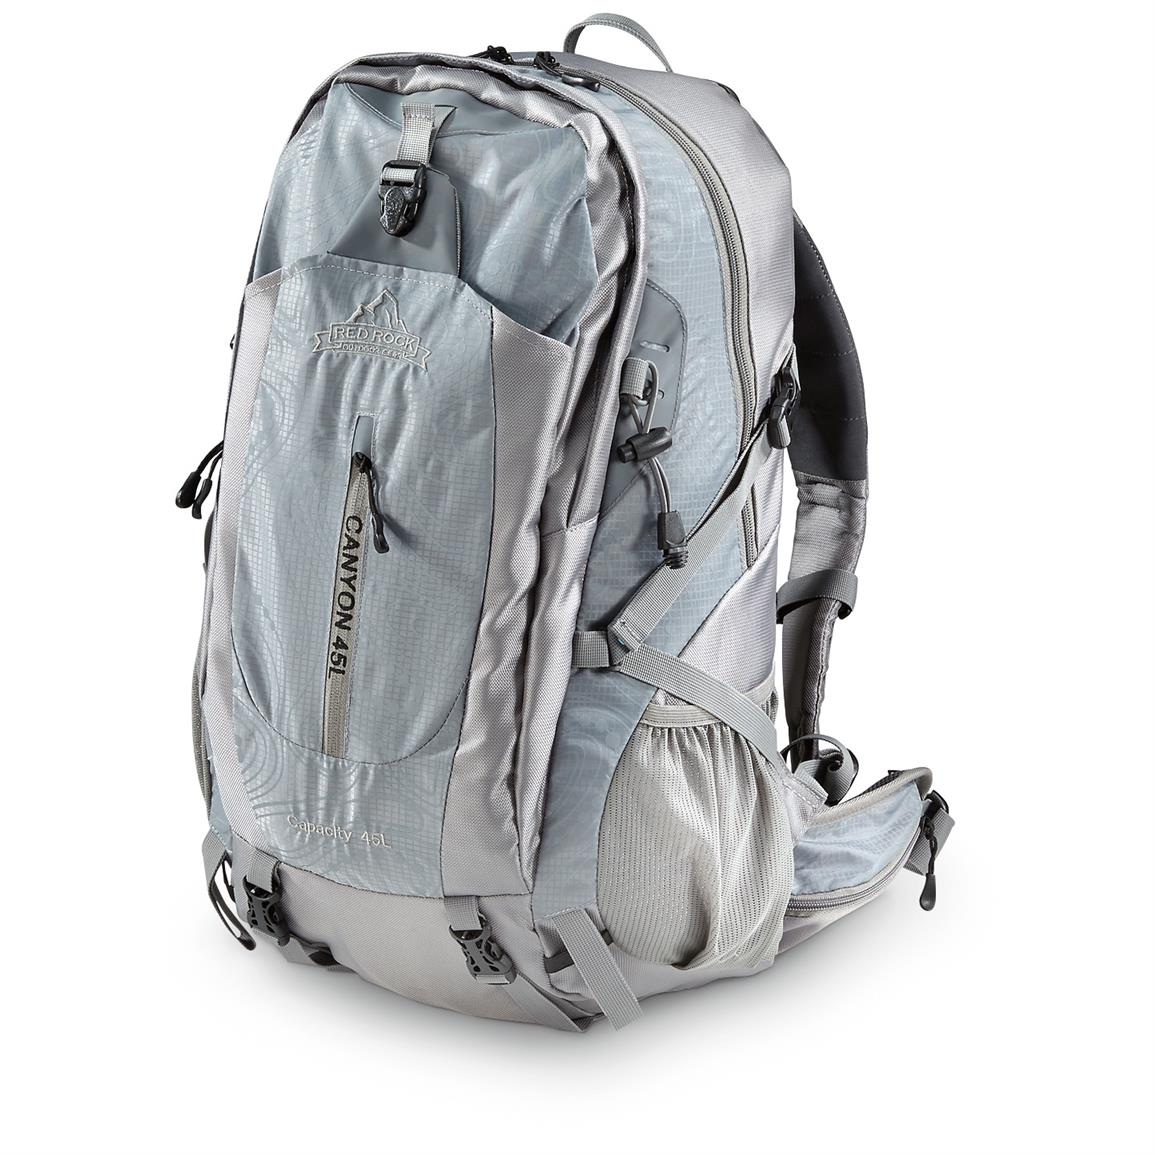 Red Rock Canyon Day Pack, 45 Liter, Gray